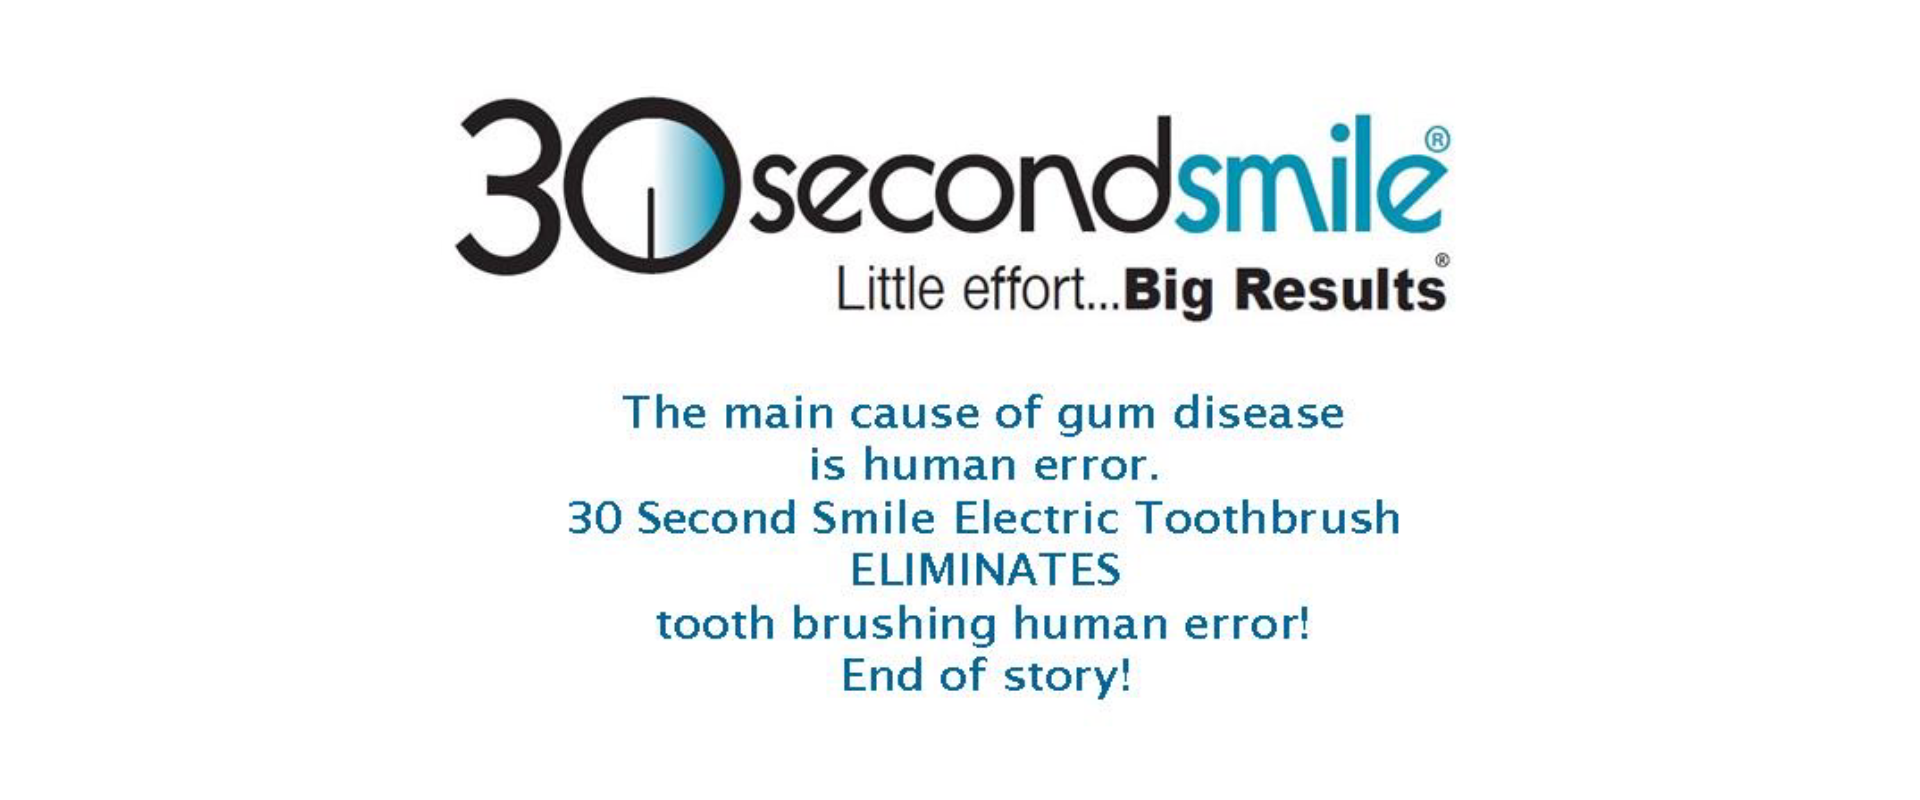 Brush your gums; save your teeth and your health! A report from the United States Centers